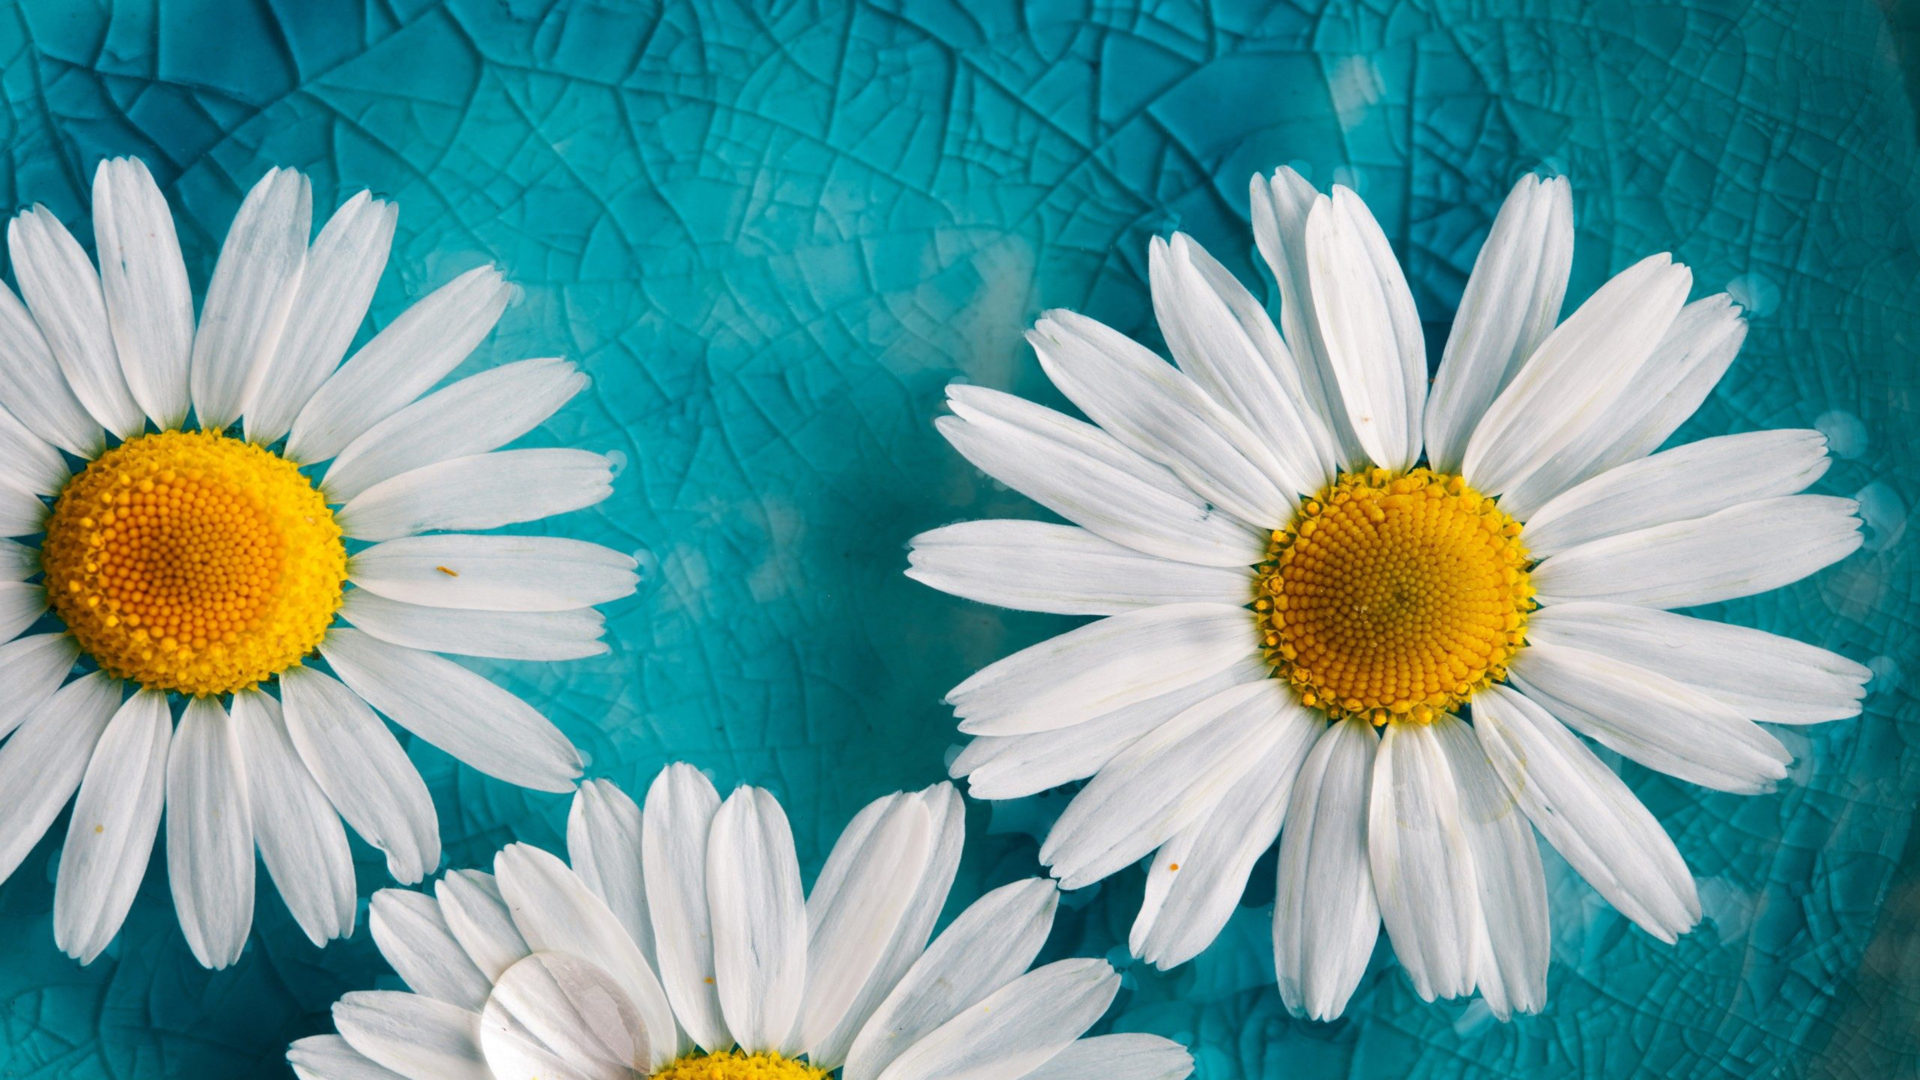 Cracked Screen Iphone 4 Wallpaper Yellow White Flowers Blue Cracked Glass Hd Wallpaper